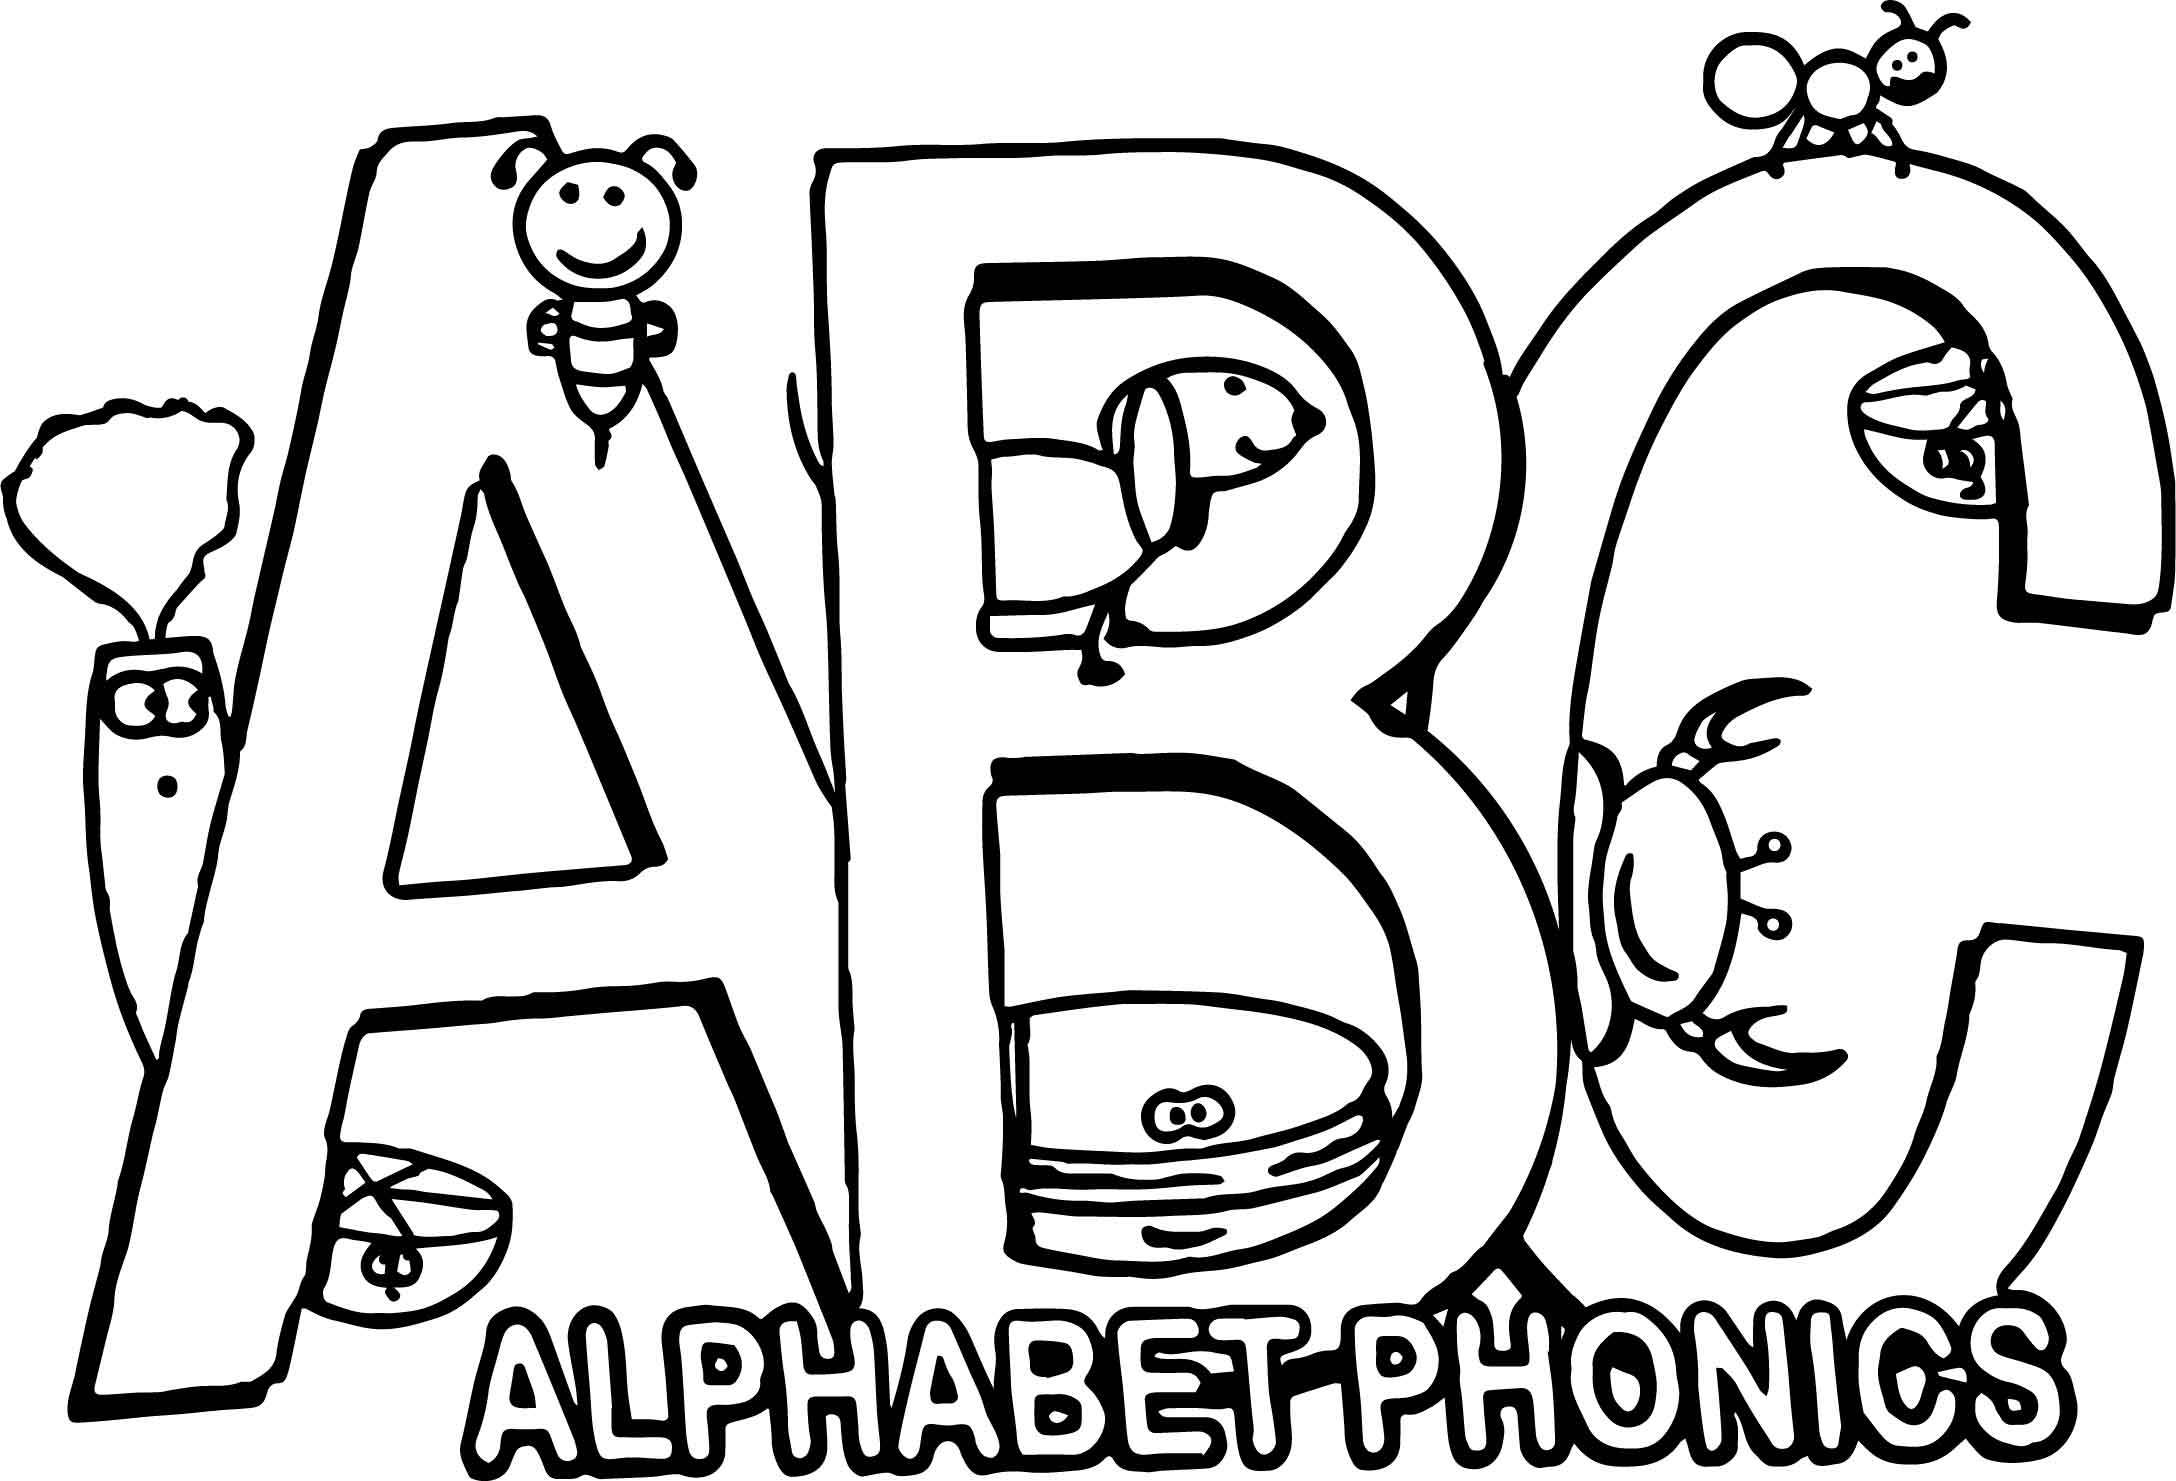 The Alphabet Song In Phonics Coloring Page